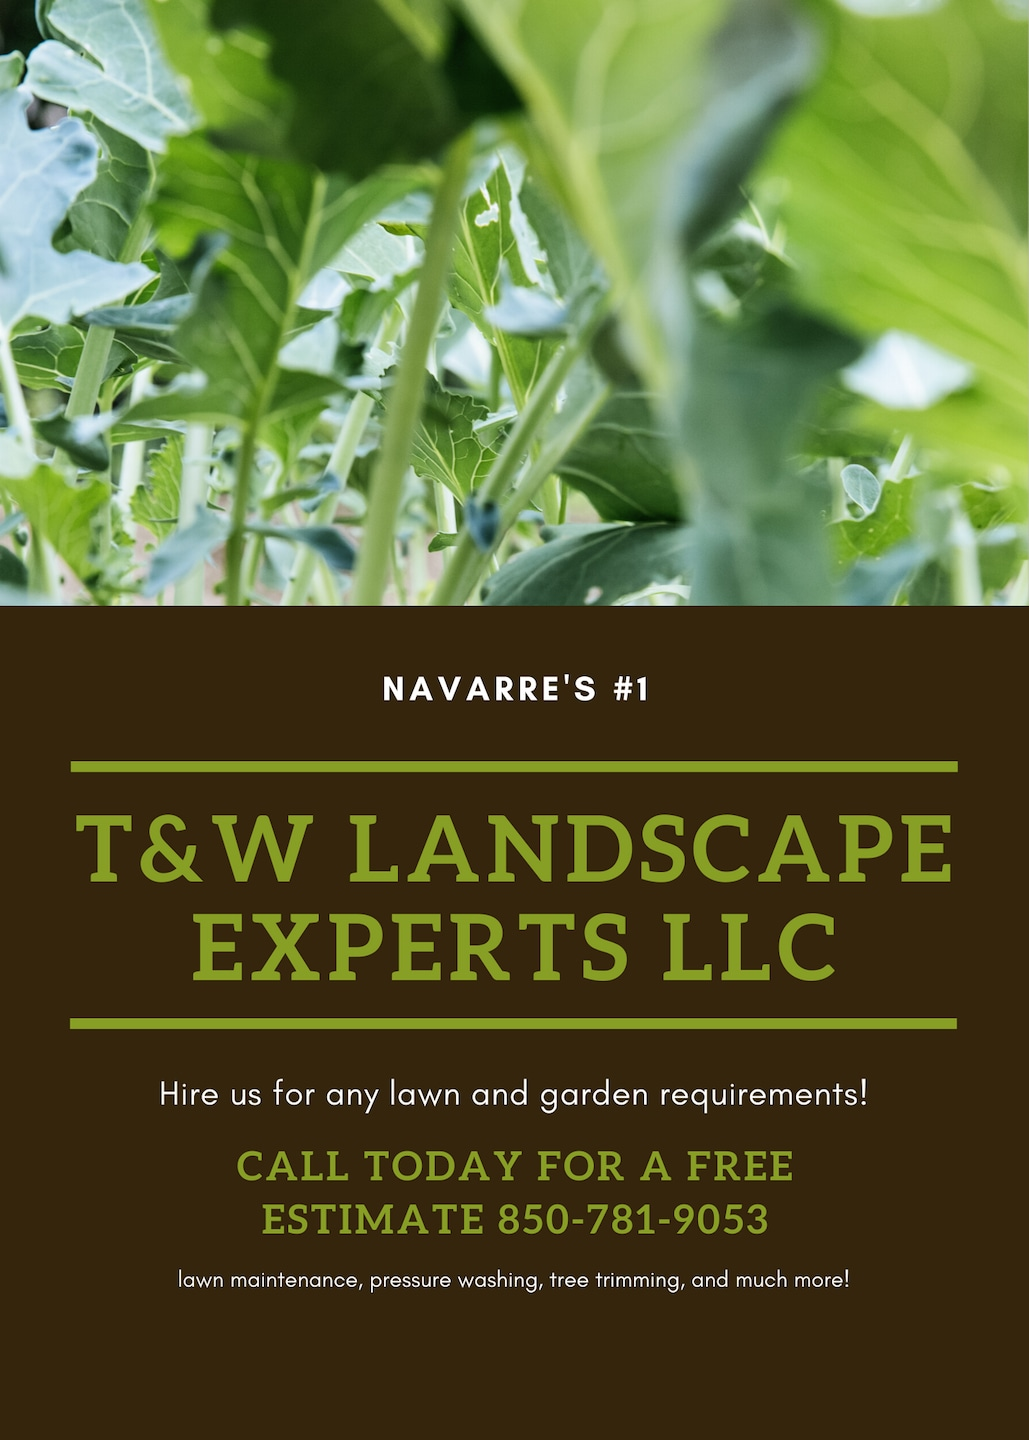 T and W LANDSCAPE EXPERTS